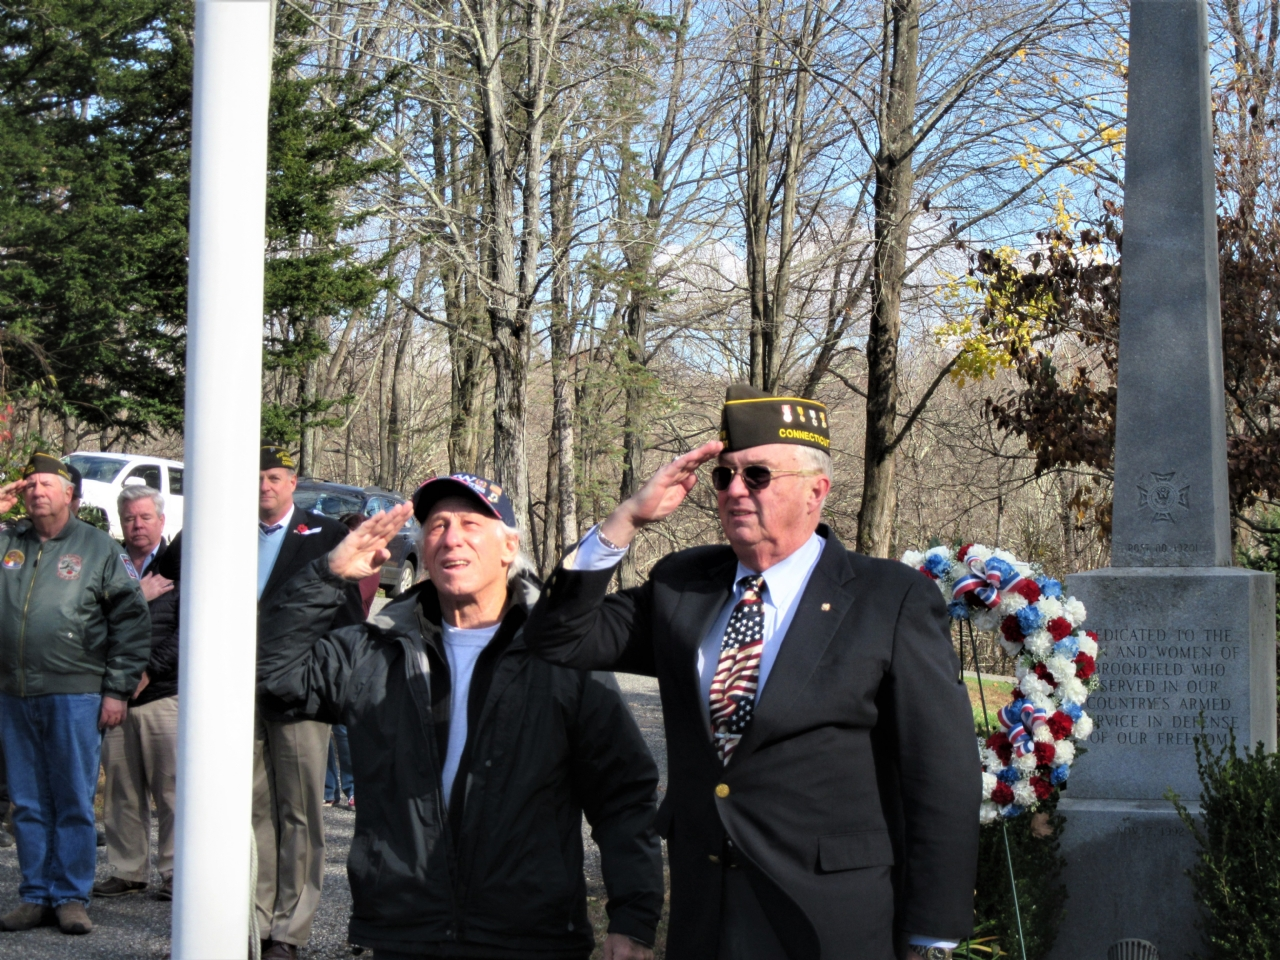 Jack Tyransky and Sandy Sanderson salute the American Flag after raising it.